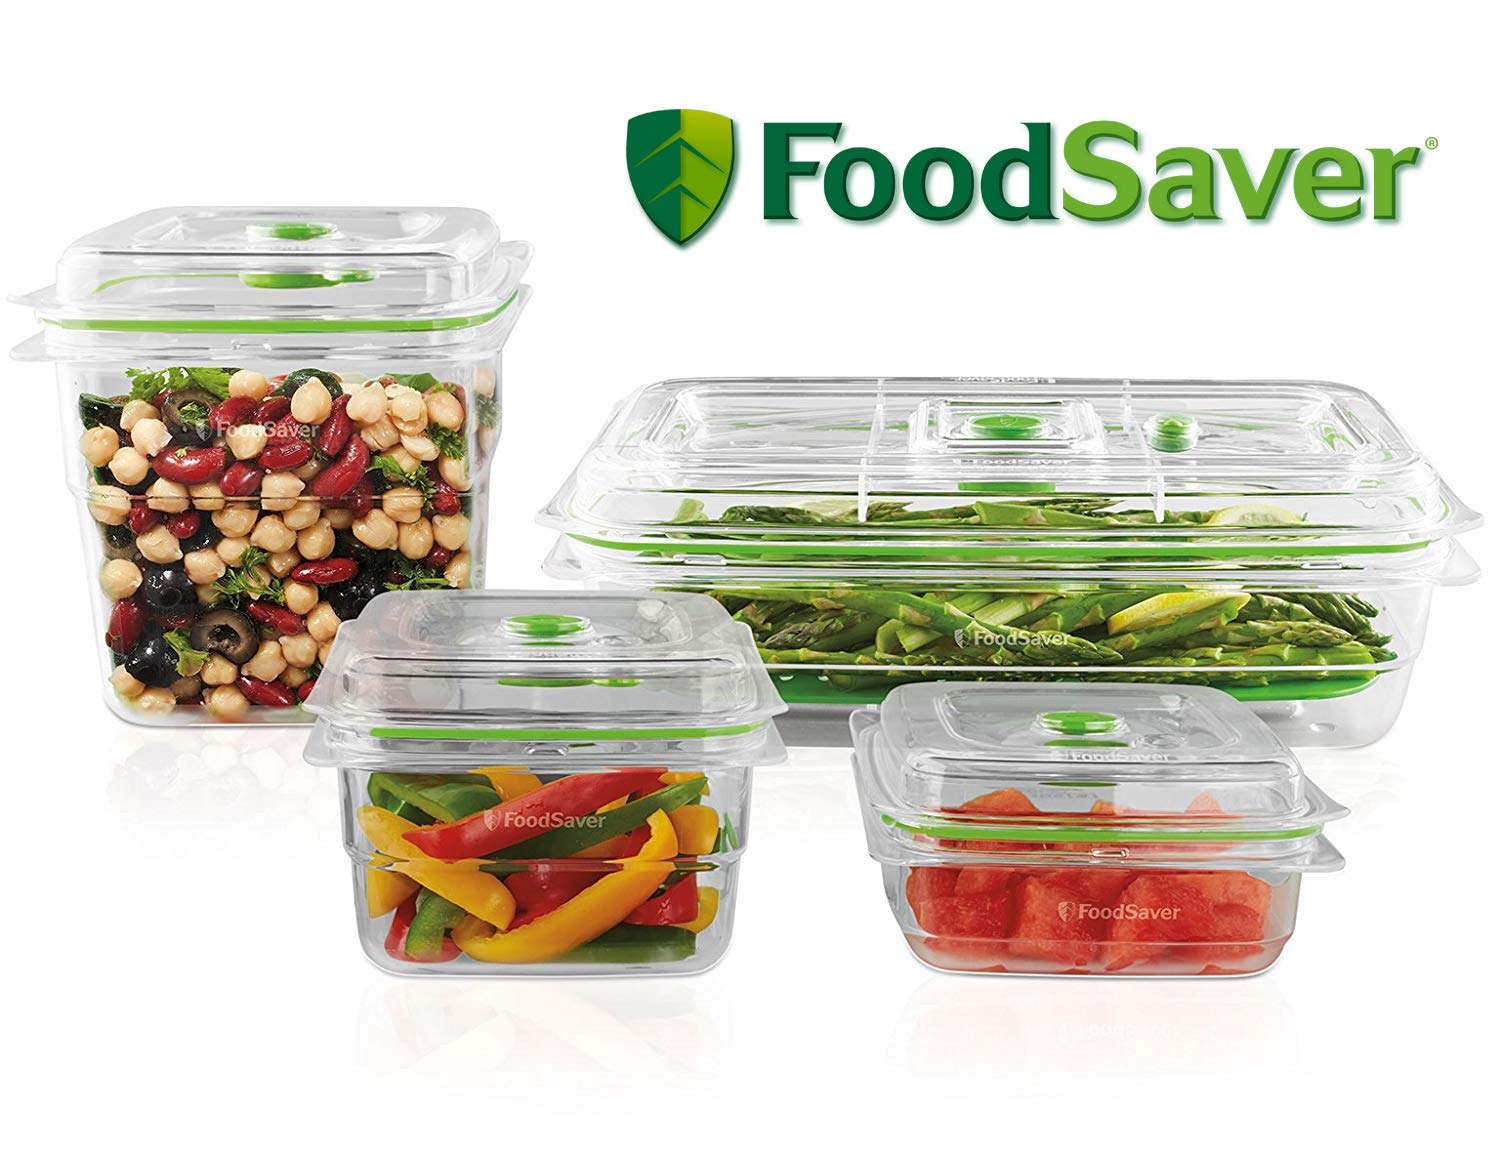 FoodSaver B01AJJ1WNA FA4SC35810-000 Fresh Vacuum Seal Food and Storage Containers, 4-Piece Set, Clear, Multi by FoodSaver